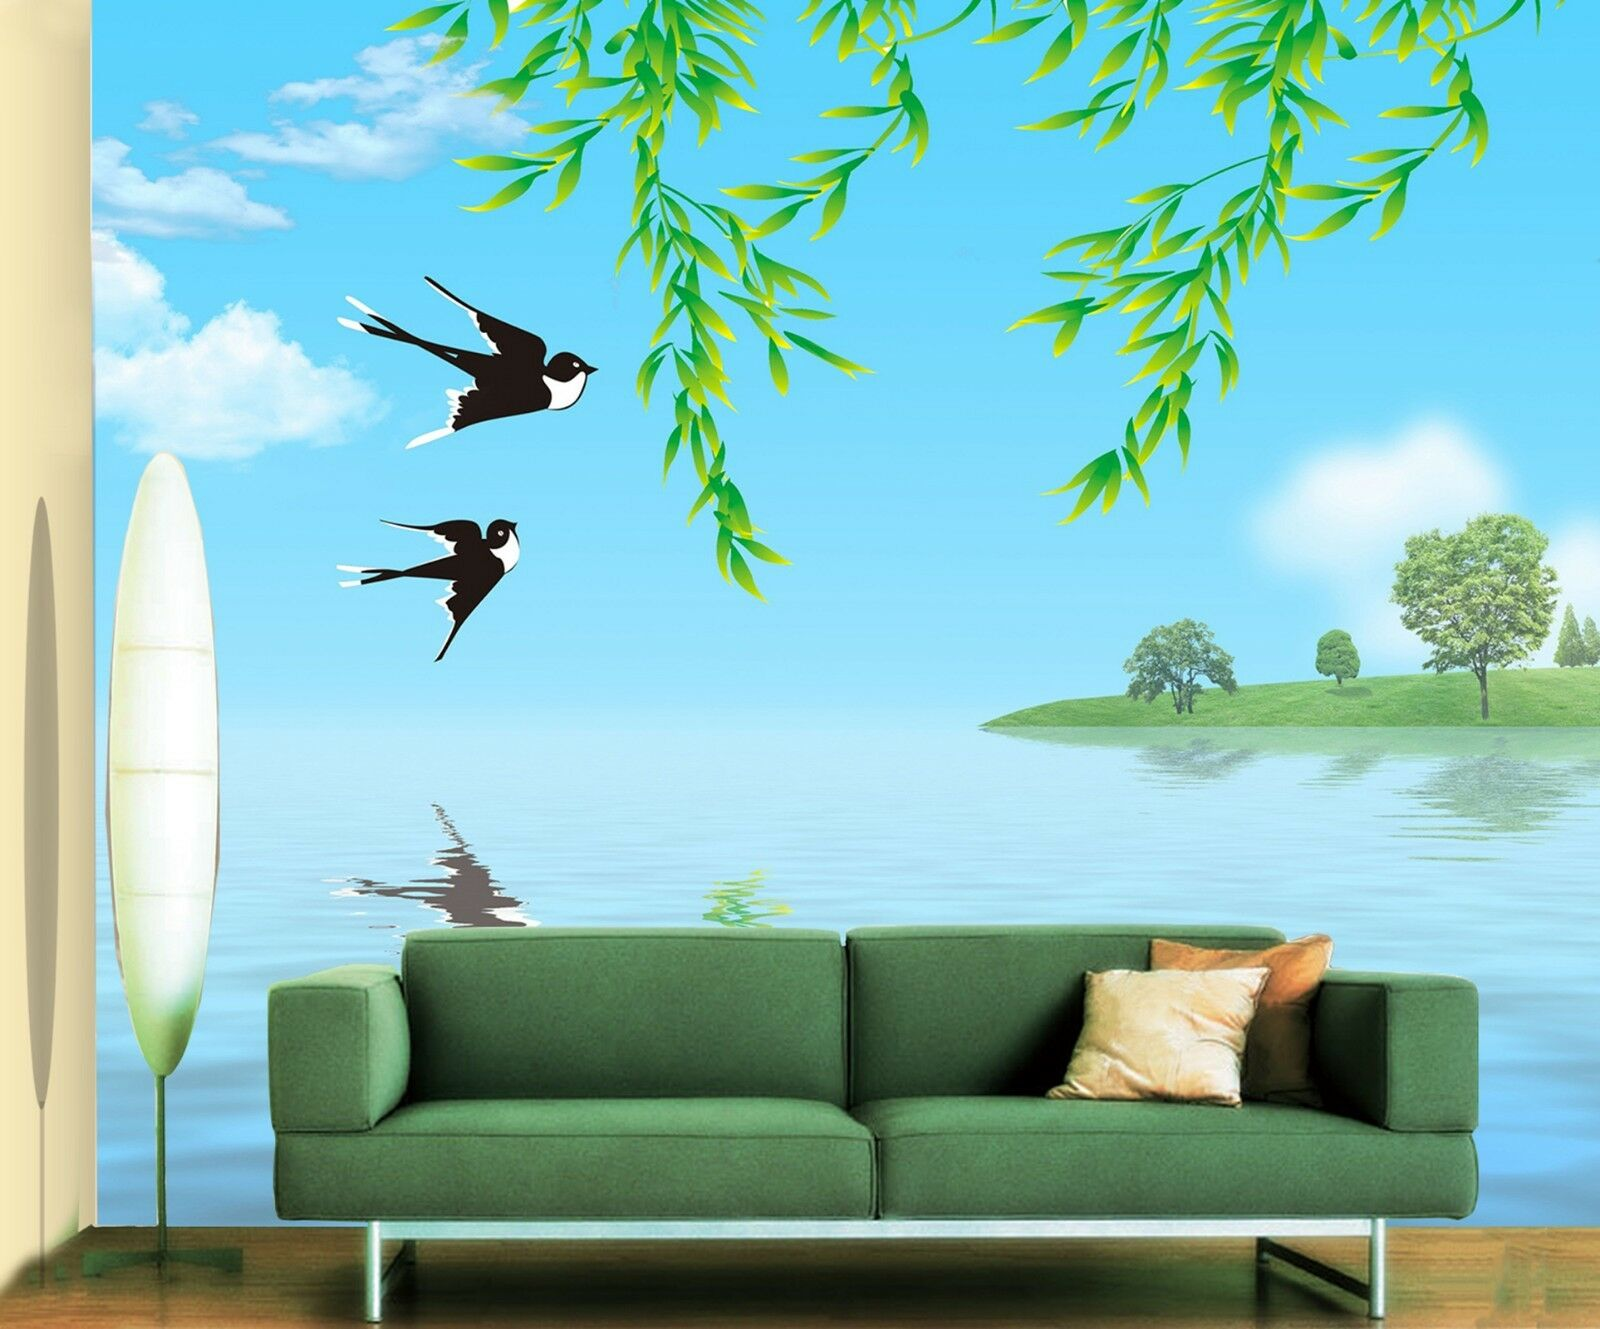 3D Swallows willow lake Wall Paper Print Decal Wall Deco Indoor wall Mural